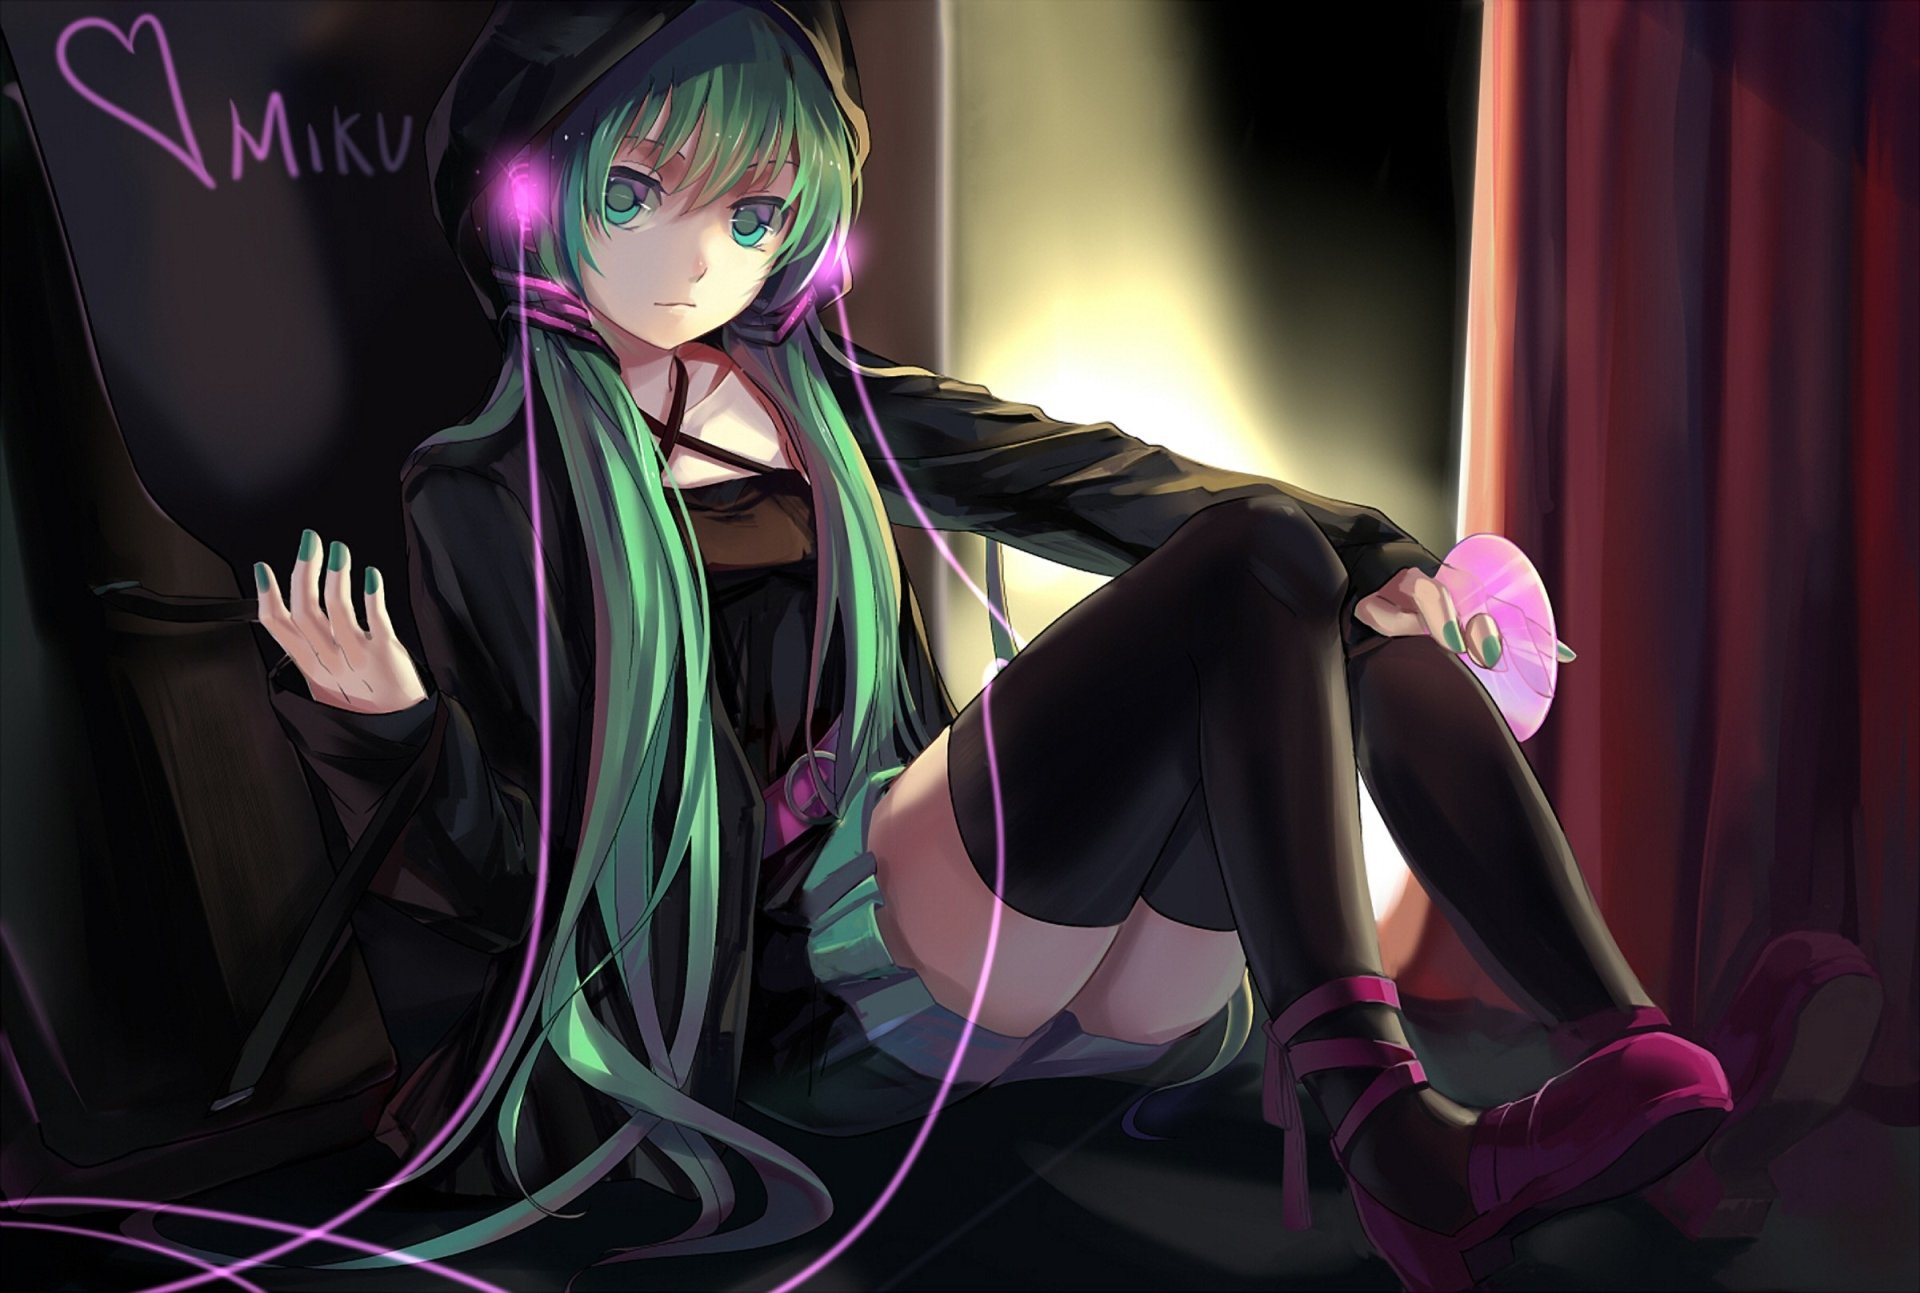 Anime - Vocaloid  Hatsune Miku Anime Blue Hair Blue Eyes Girl Wallpaper